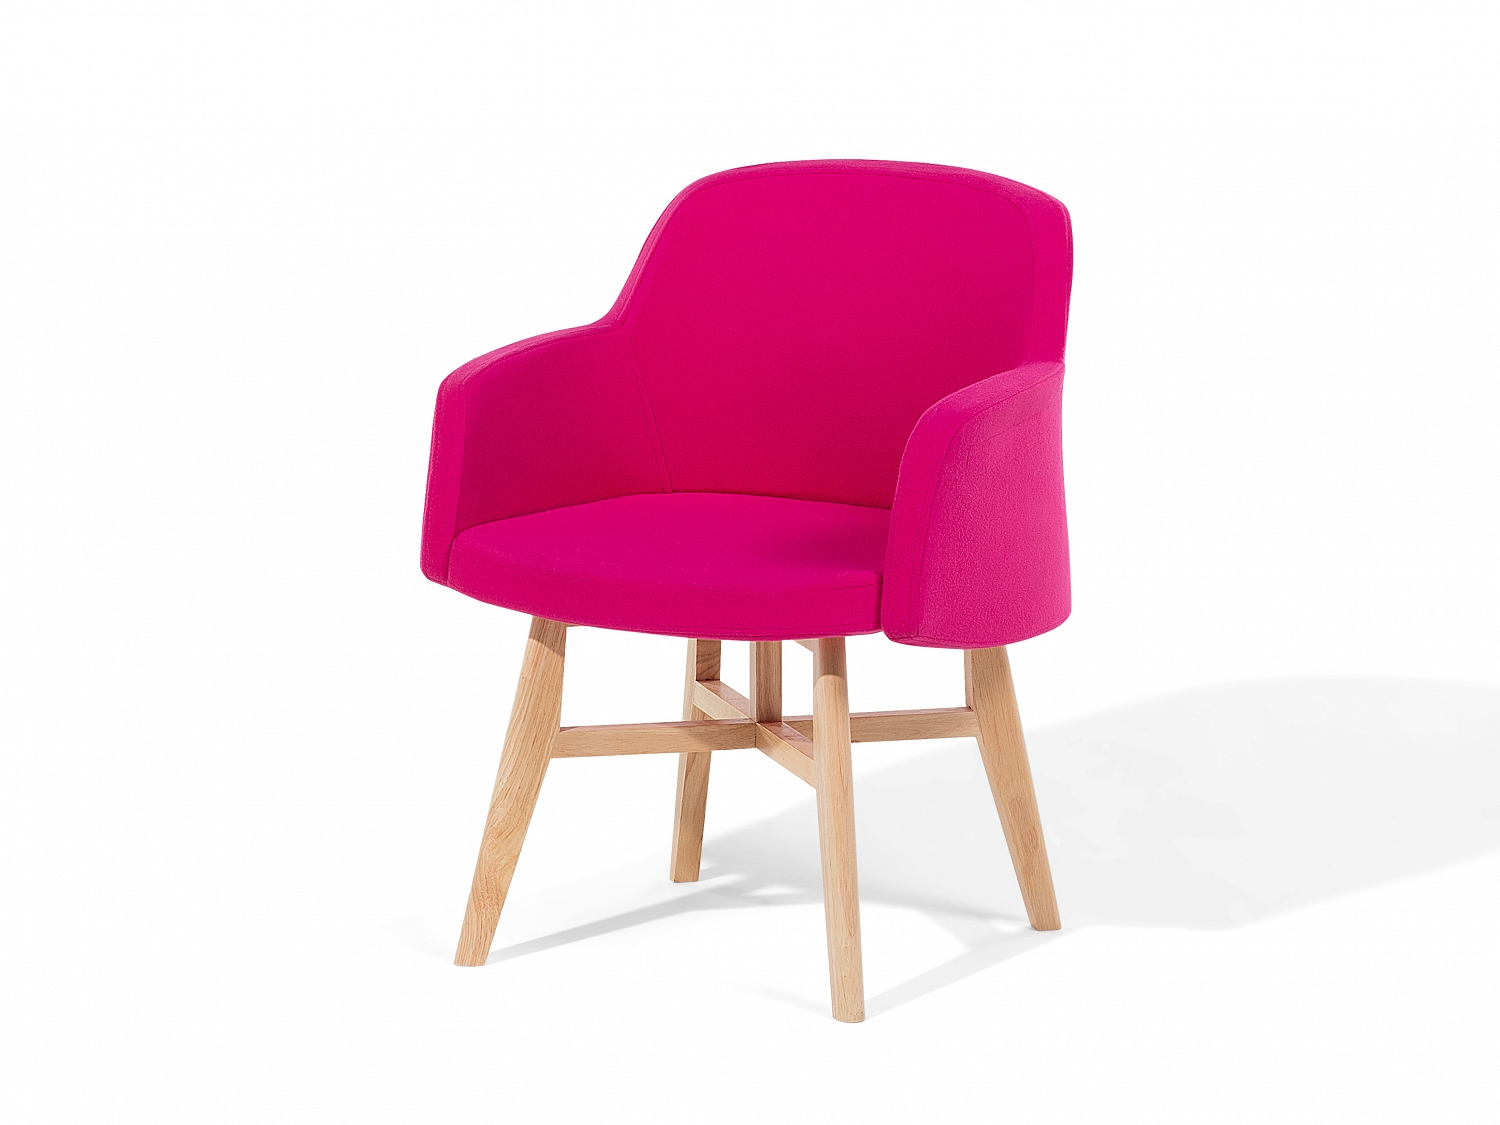 Living Room Chair Cocktail Chair Contemporary